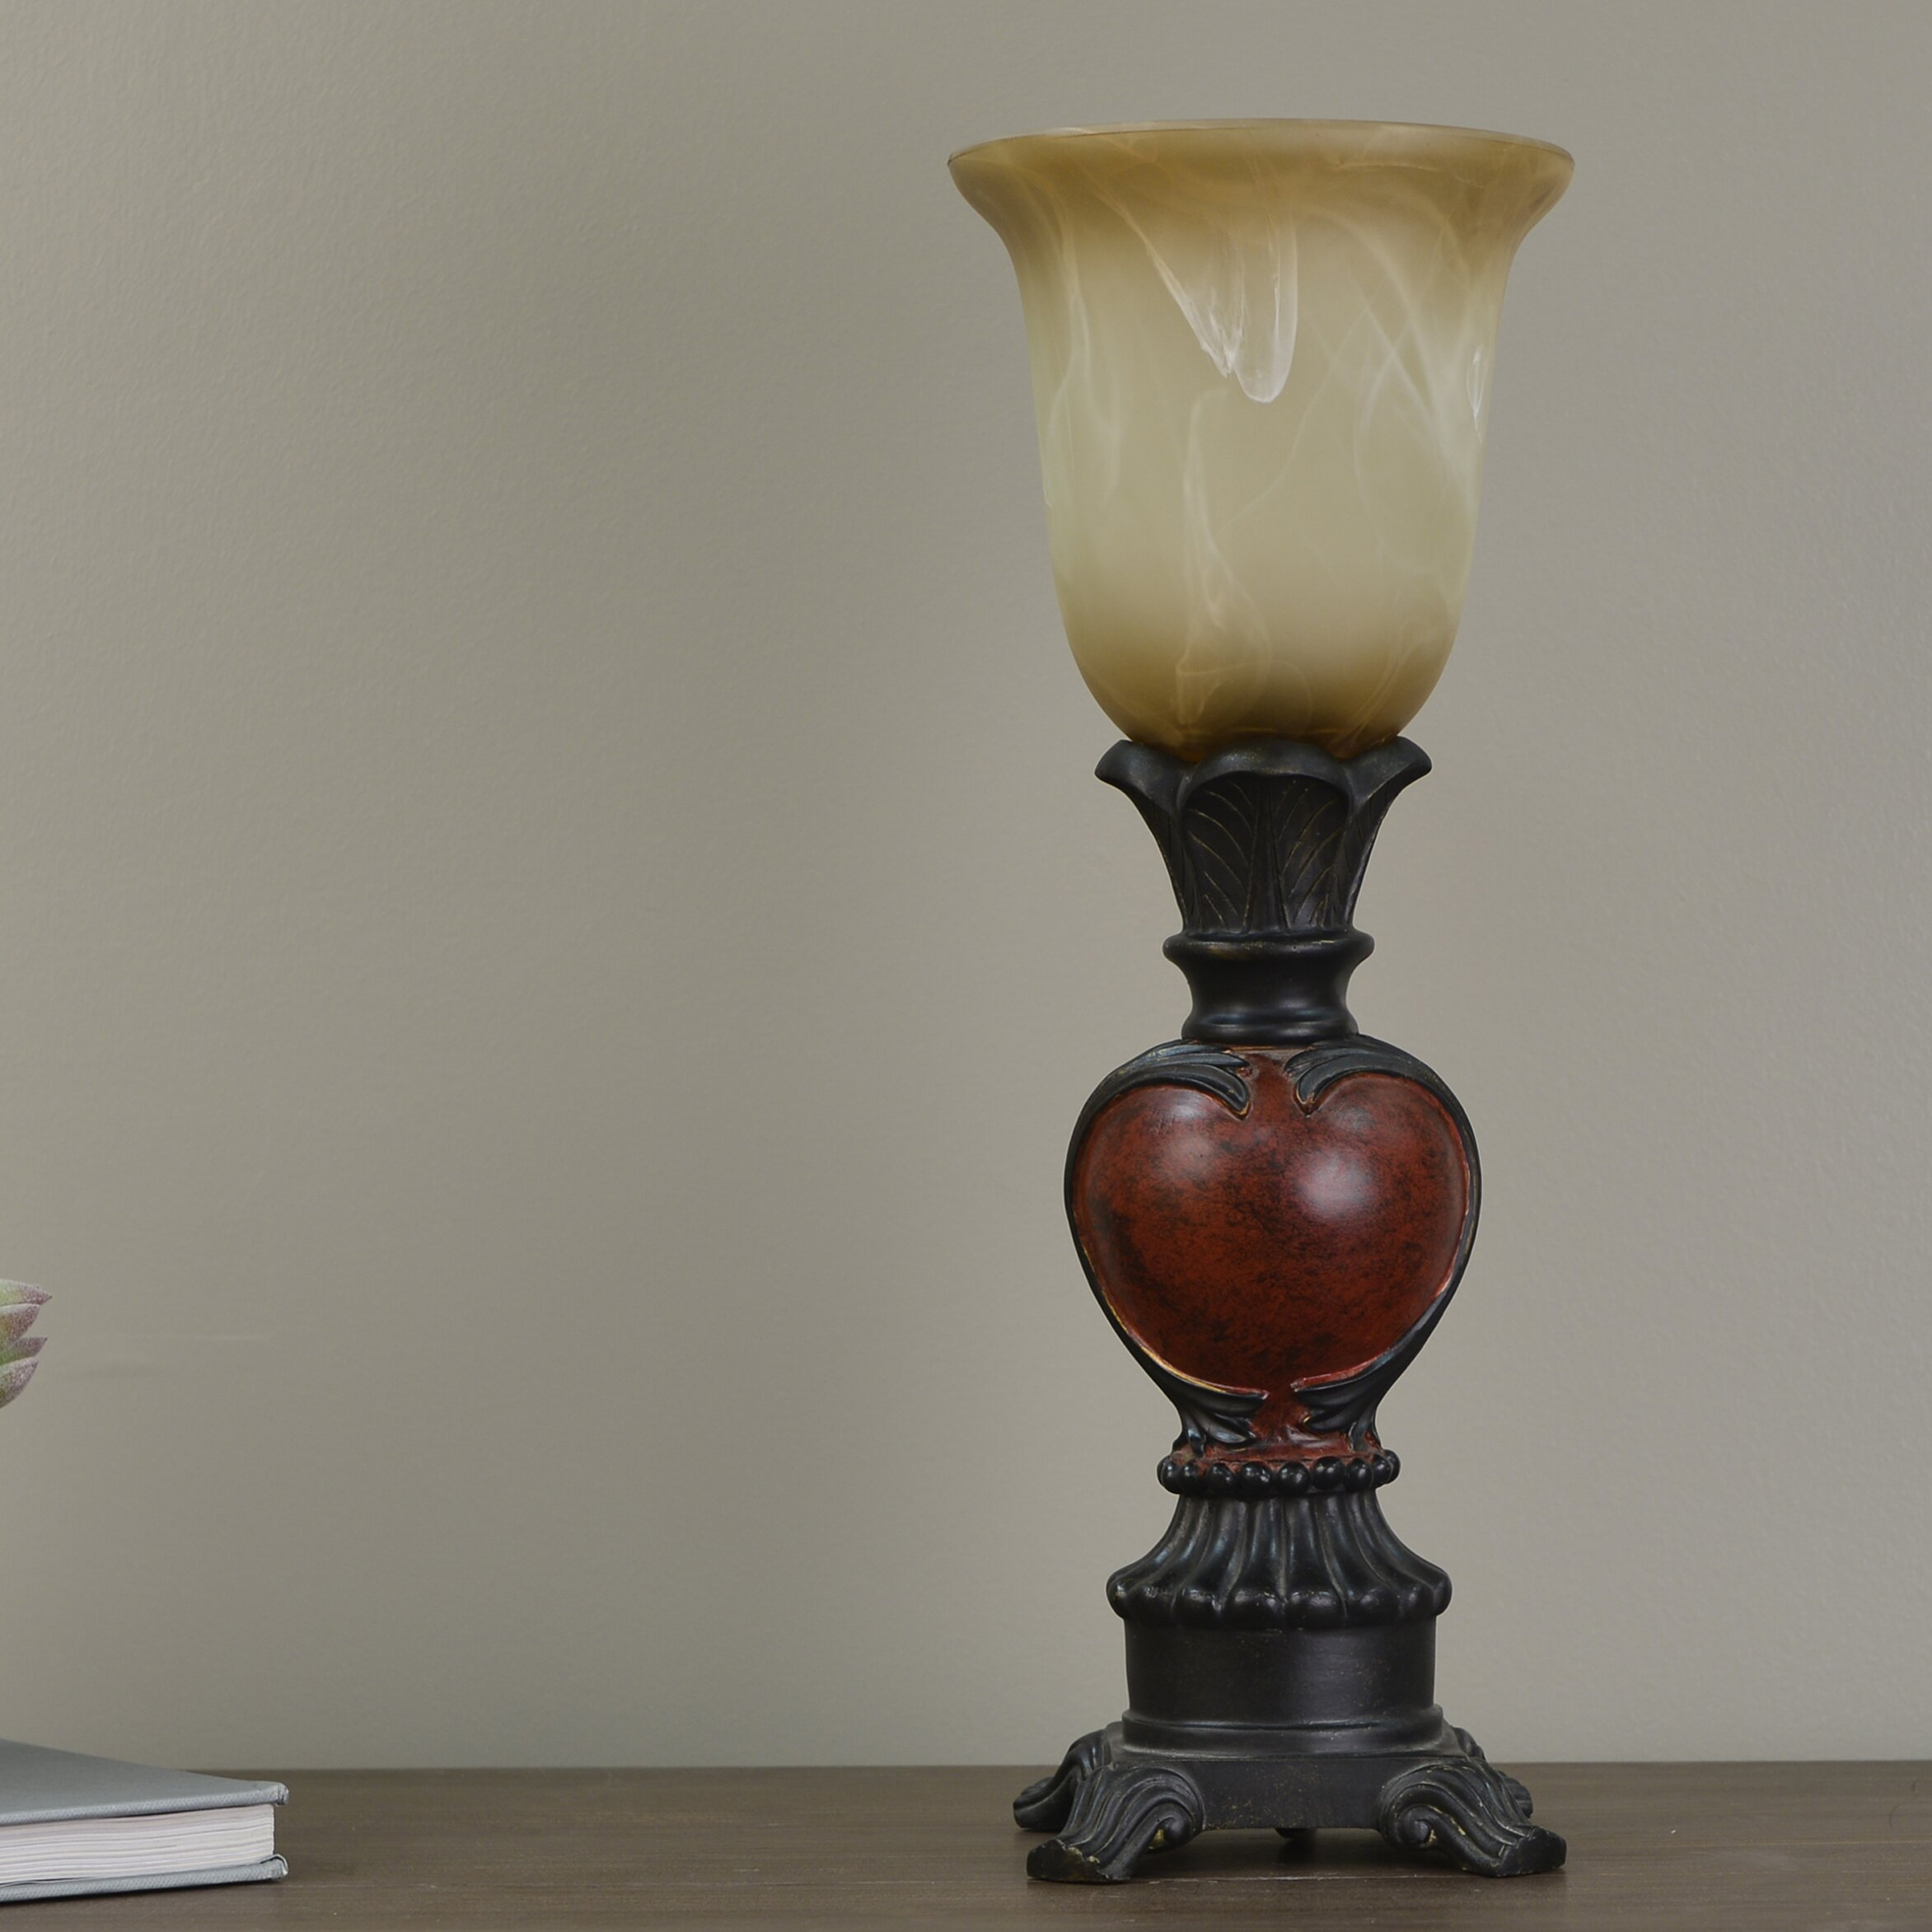 Decor therapy uplight 16 table lamp reviews wayfair for Decor therapy